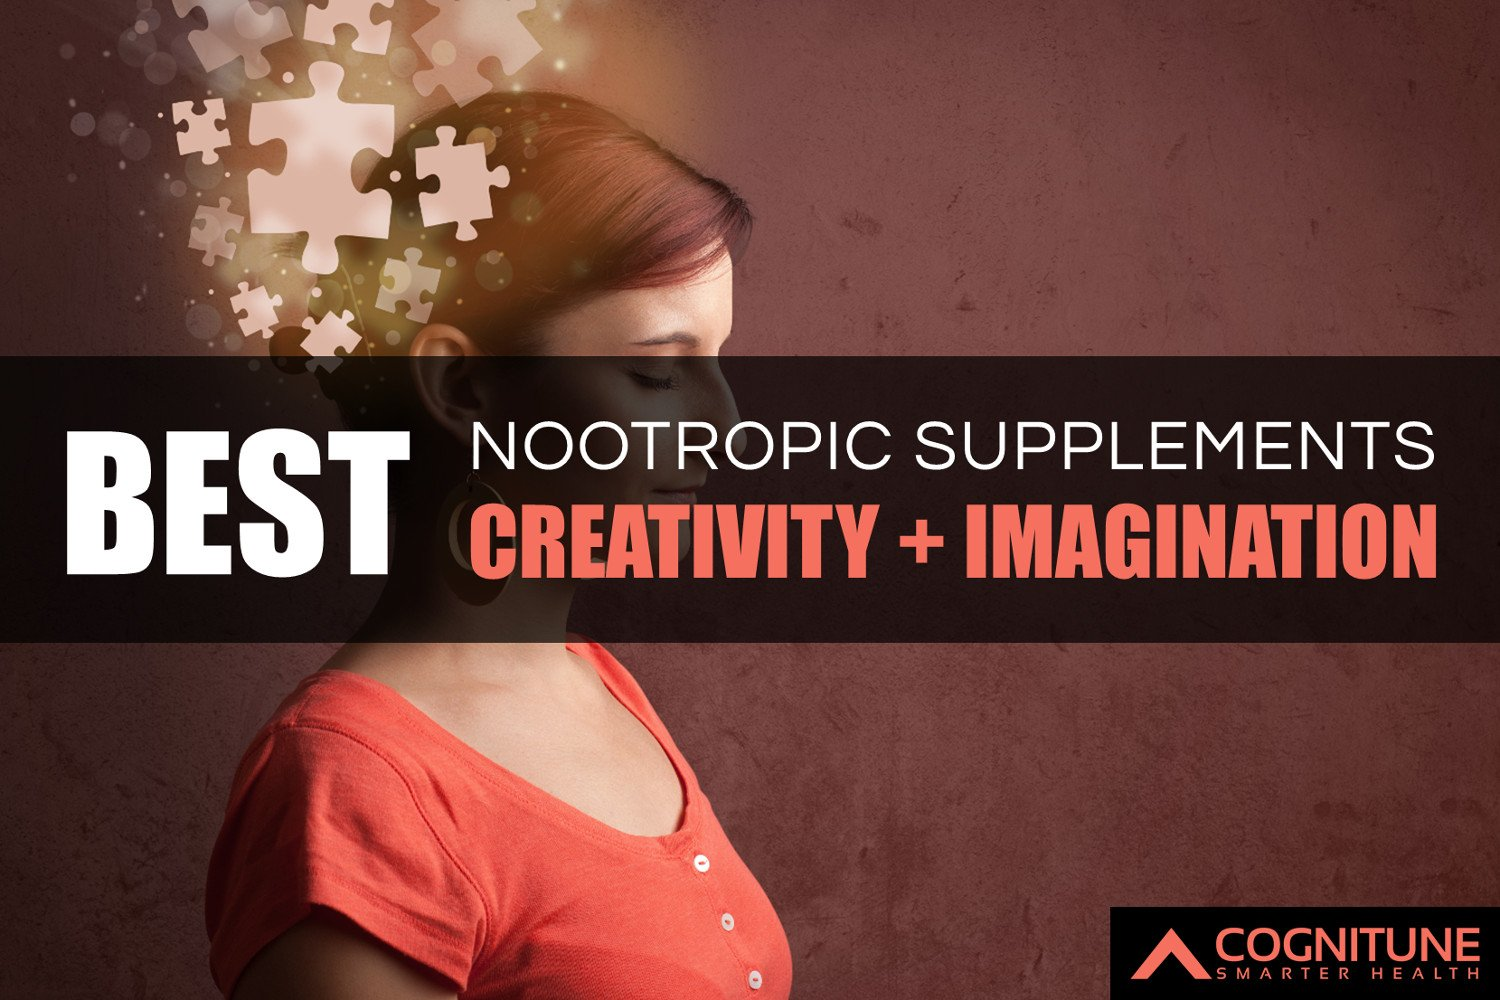 Creativity Supplements Nootropics